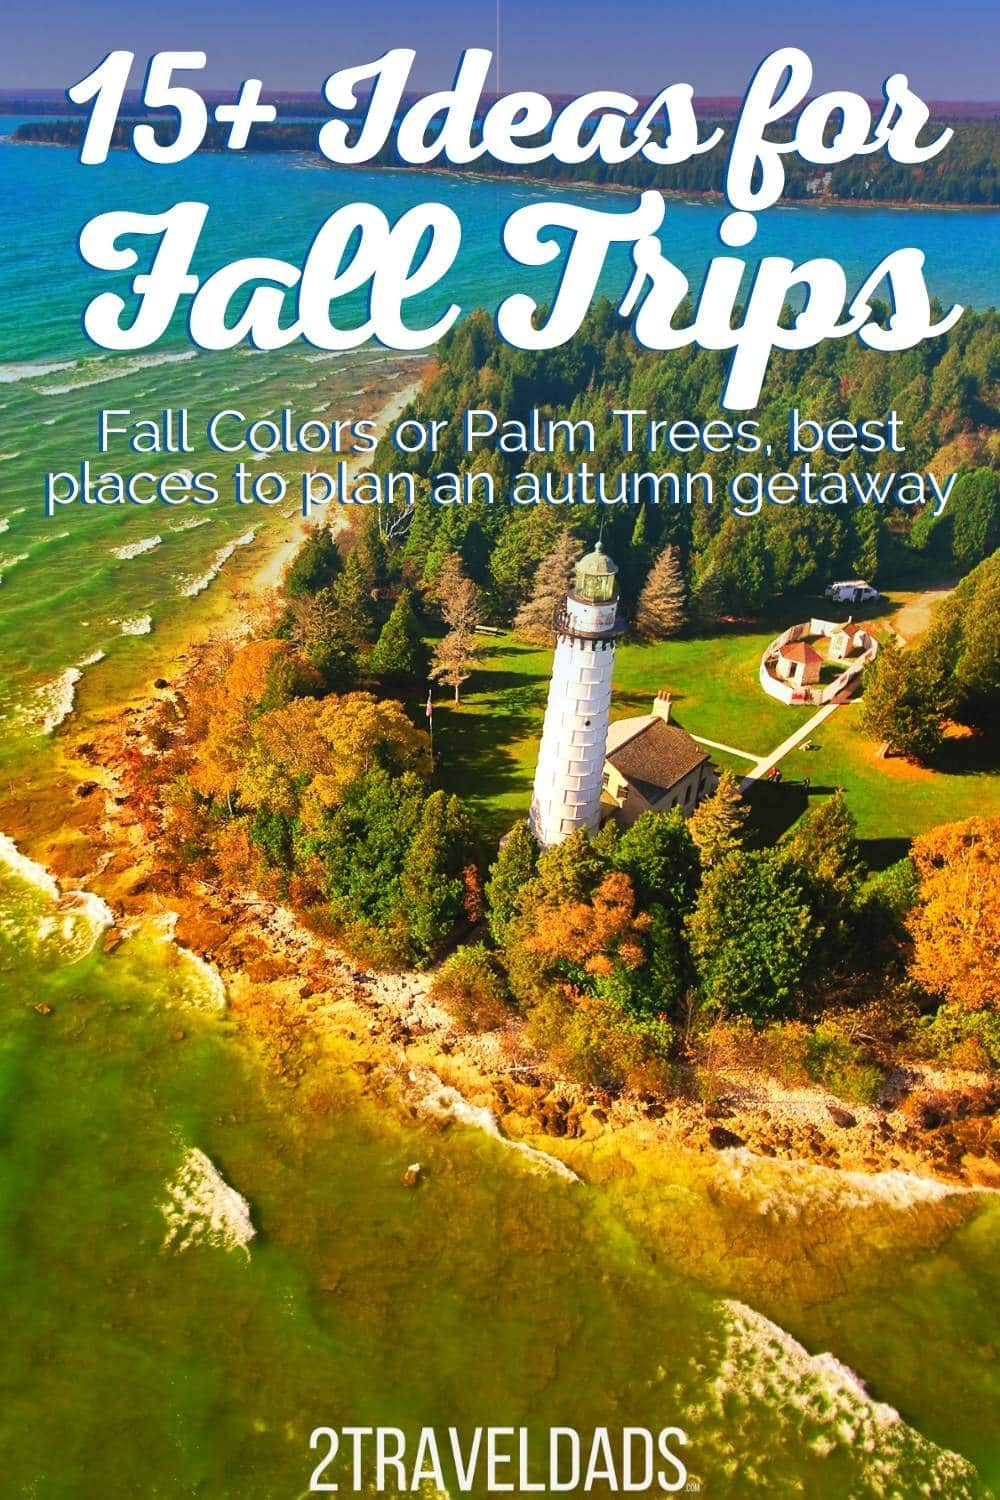 The best places for fall colors in the USA, from the Lakes Region of New Hampshire to Napa Valley. 15+ picks for easy weekend getaways for autumn foliage across the United States.